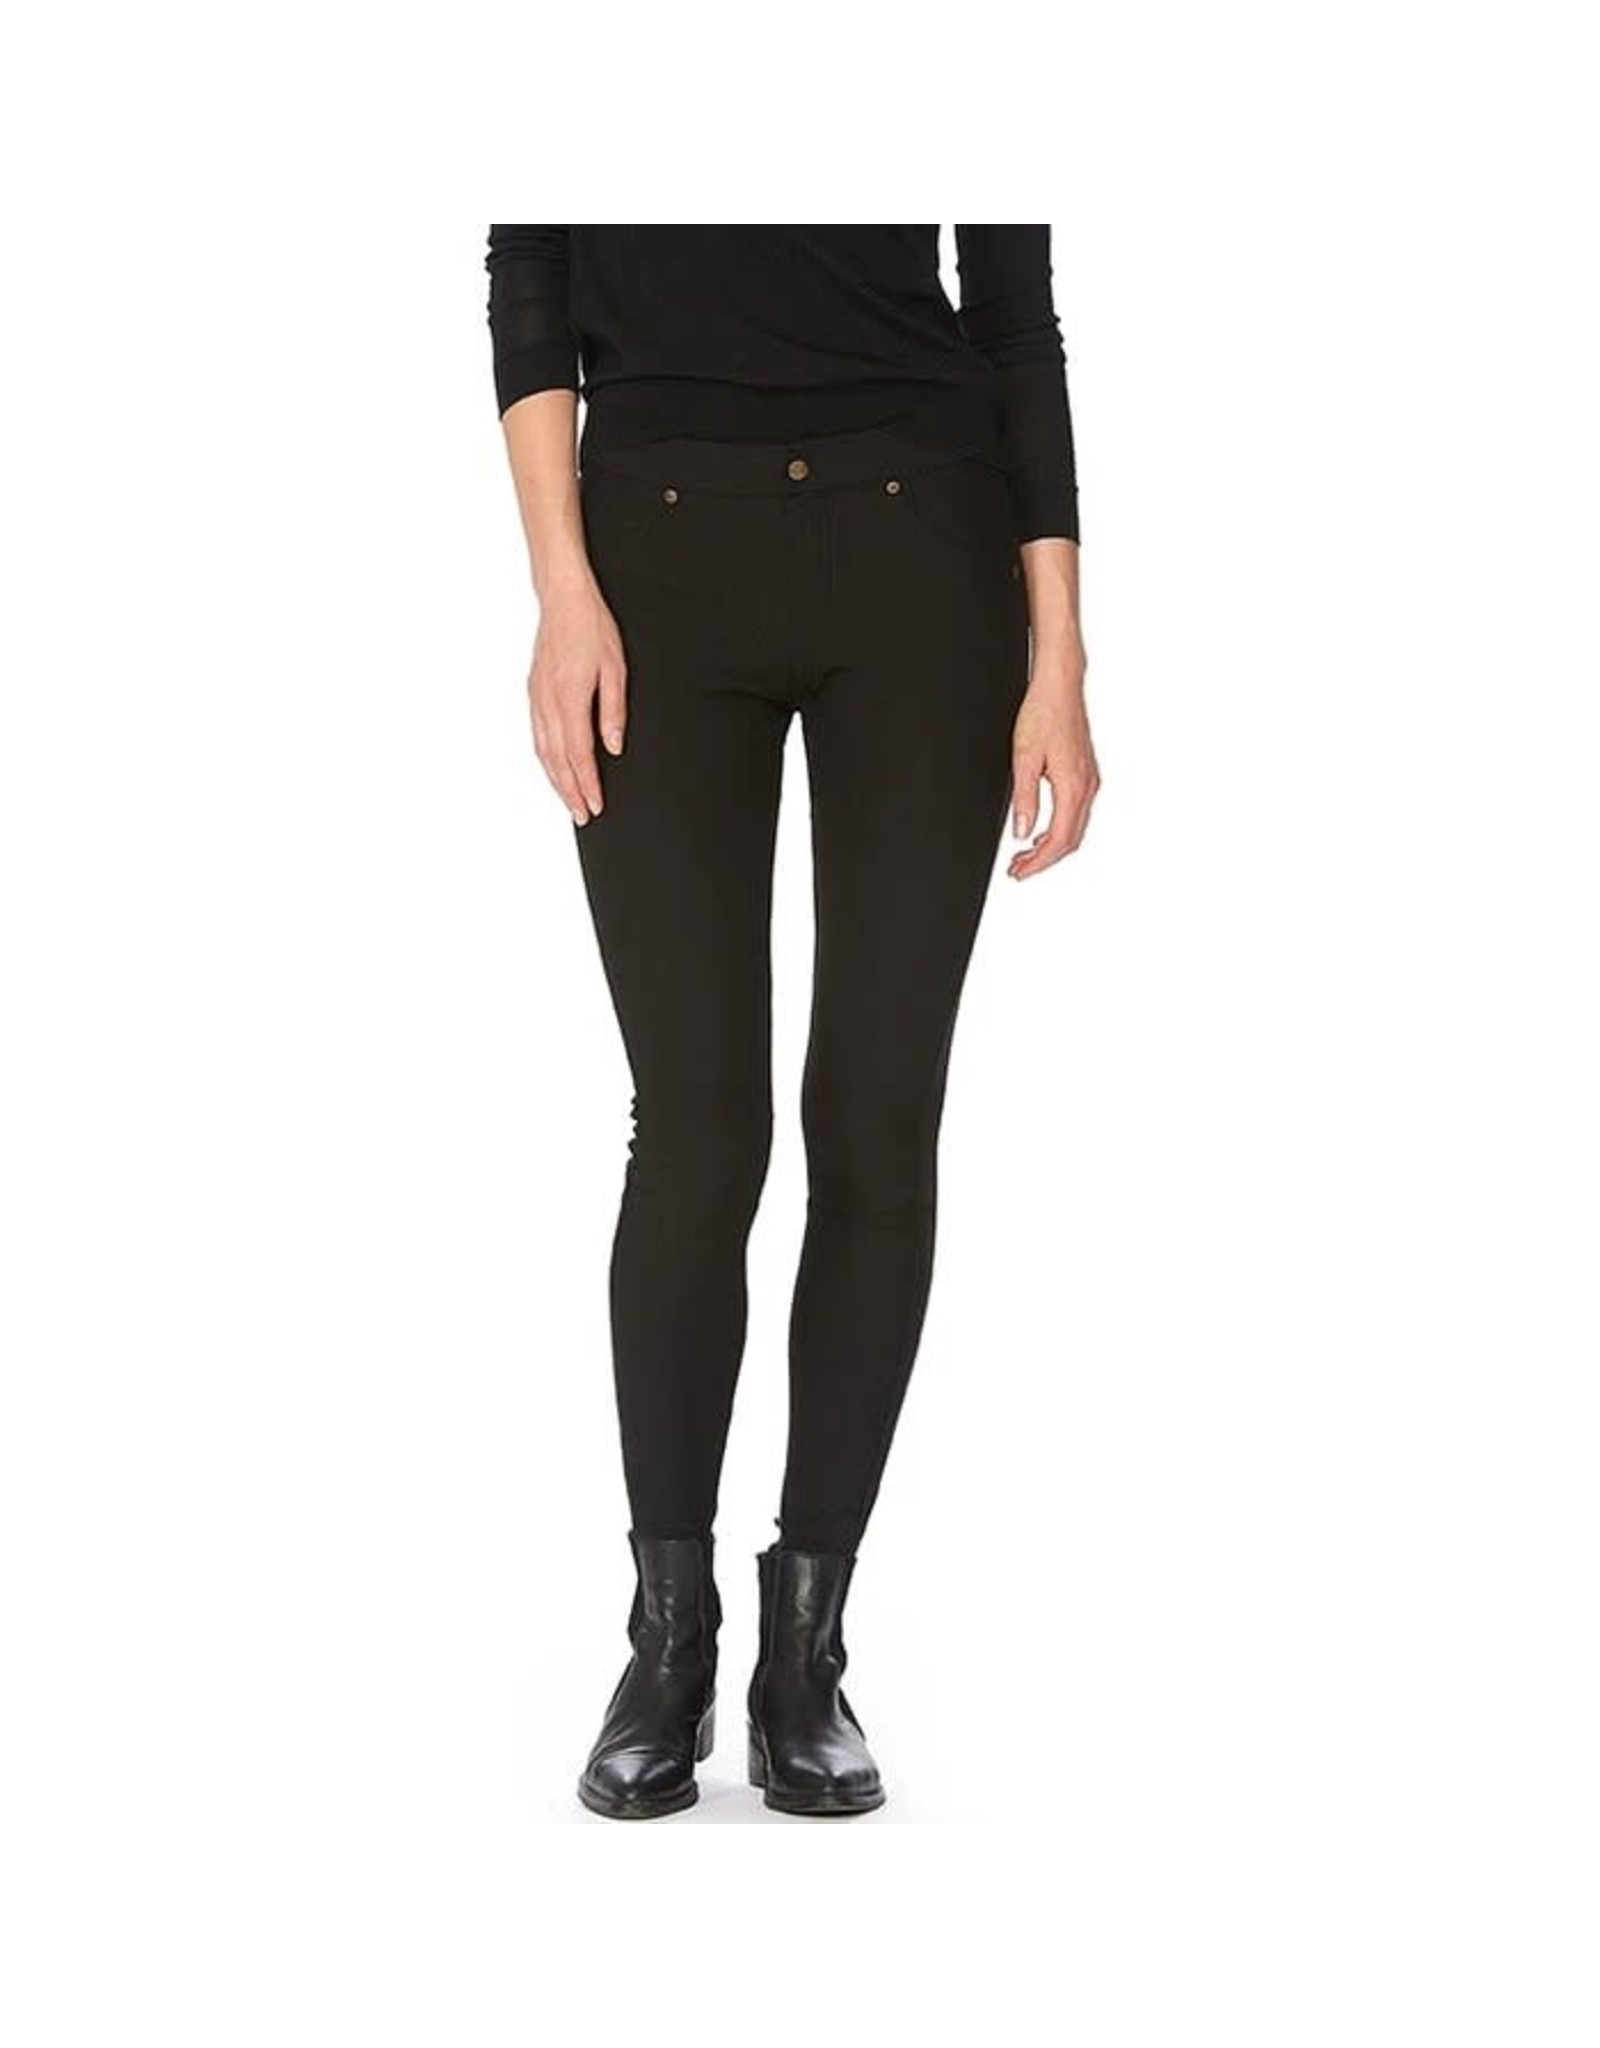 Hue Fleece-Lined Leggings